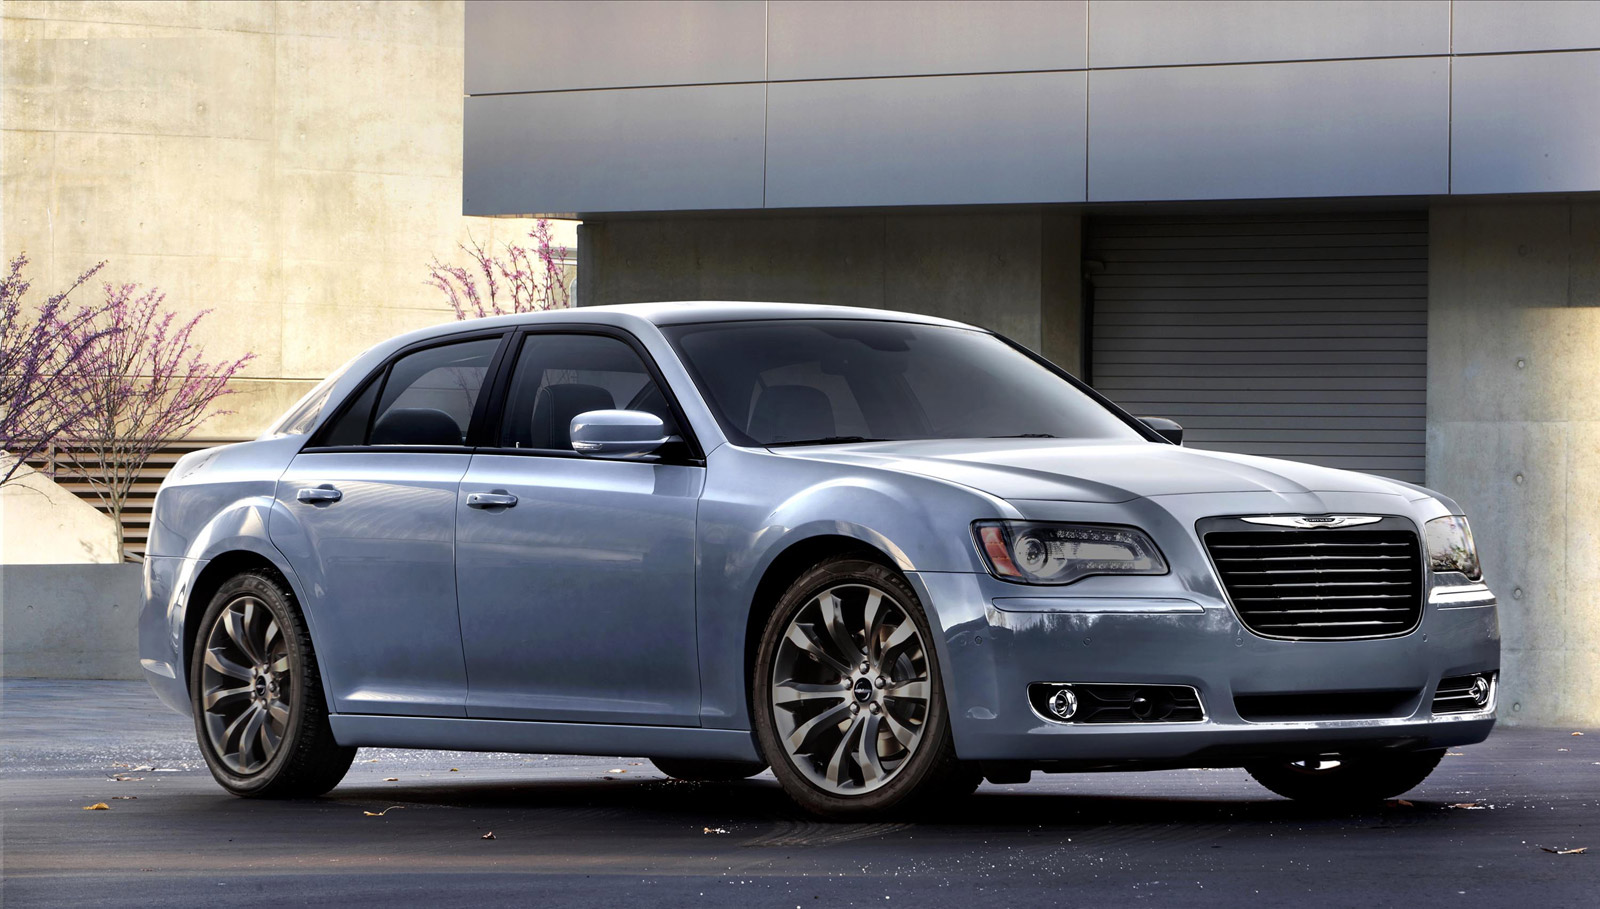 2014 Chrysler 300 #9